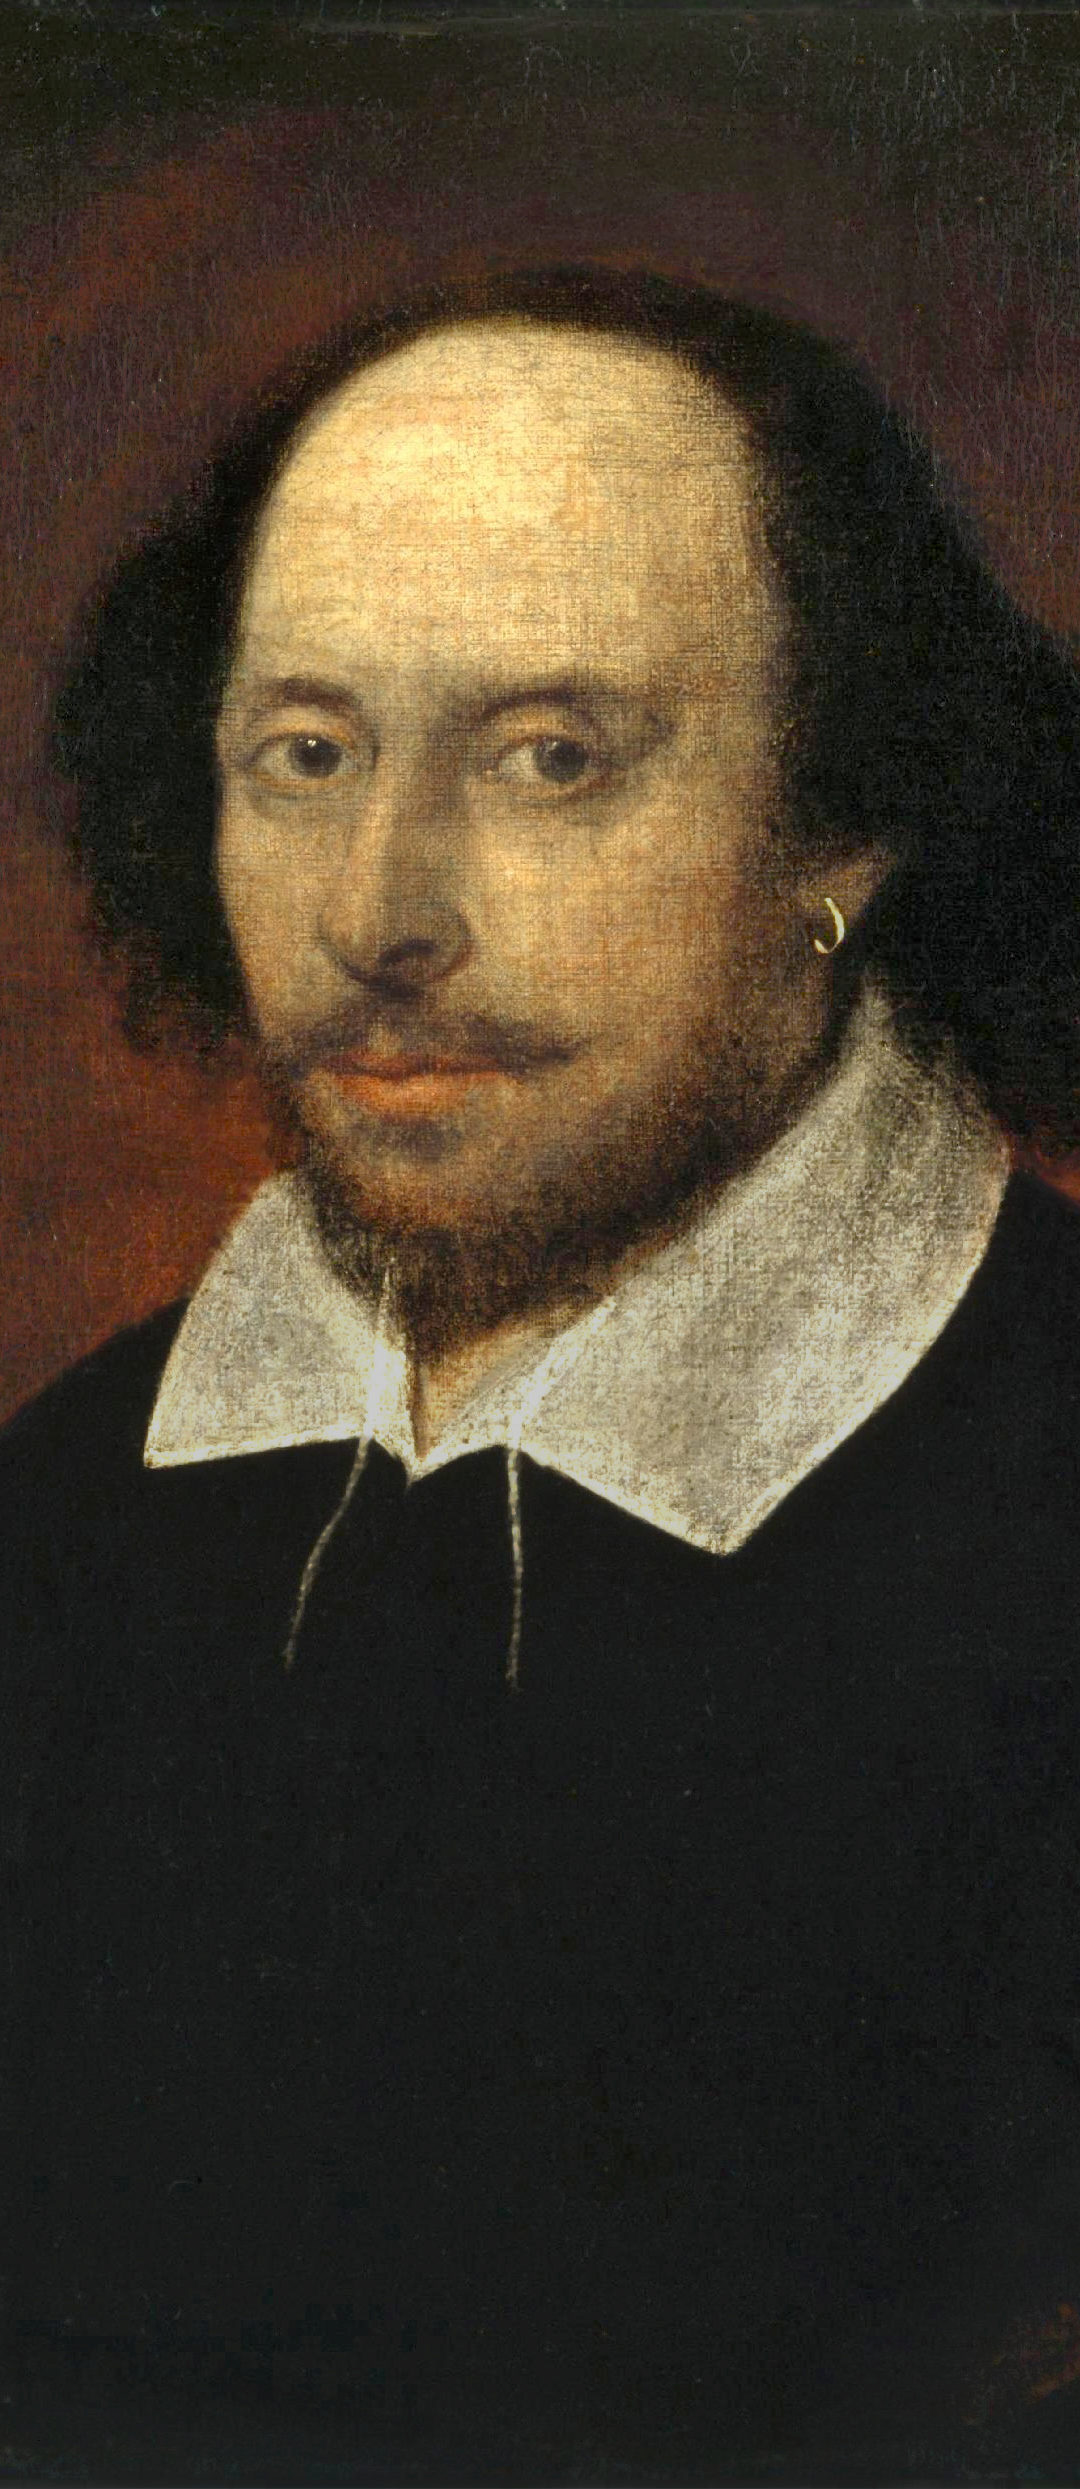 The Chandos Portrait von William Shakespeare